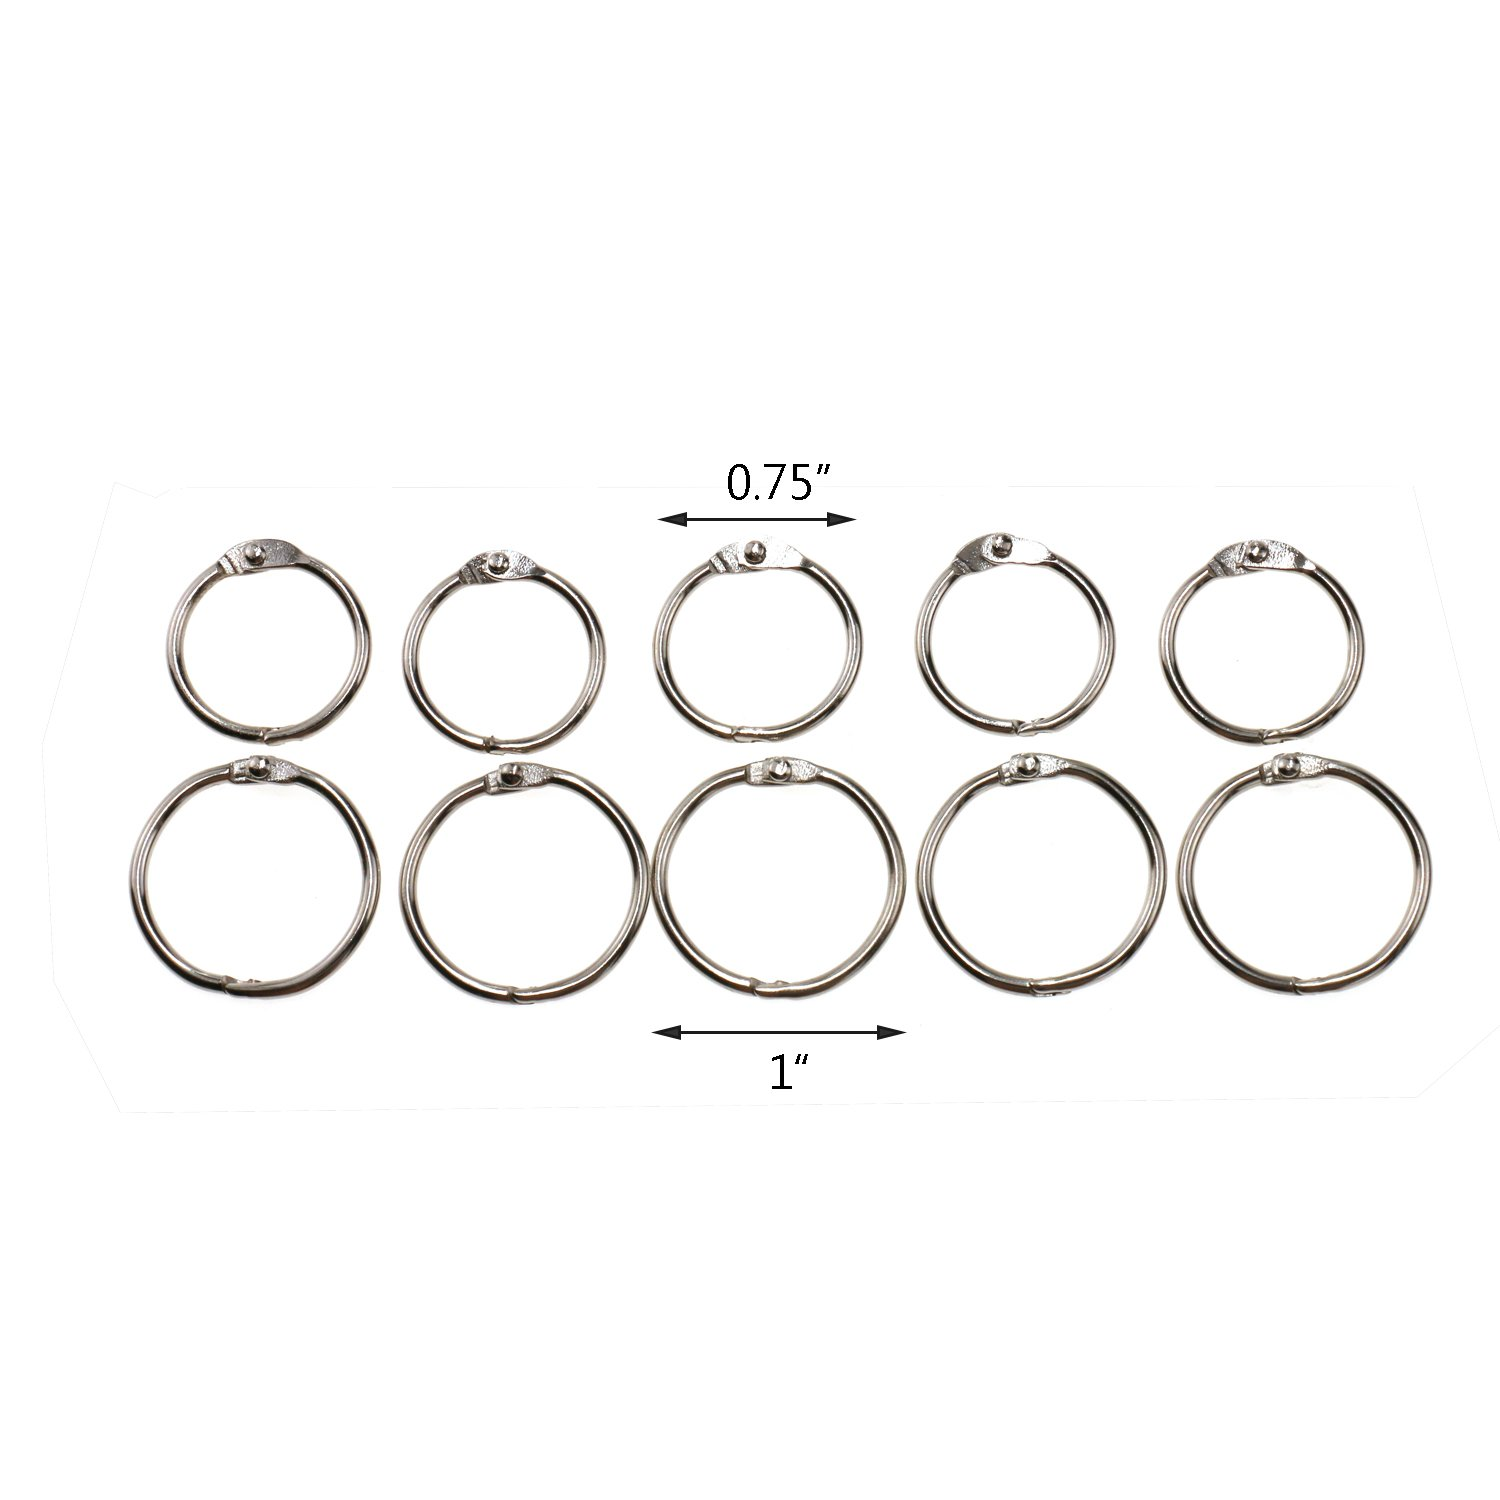 Regpre Loose Leaf Binder Rings 3/4 Inch Binder Rings 0.75 and 1 Inch Binder Rings Set of 100 and Single Hole Punch by Regpre (Image #2)